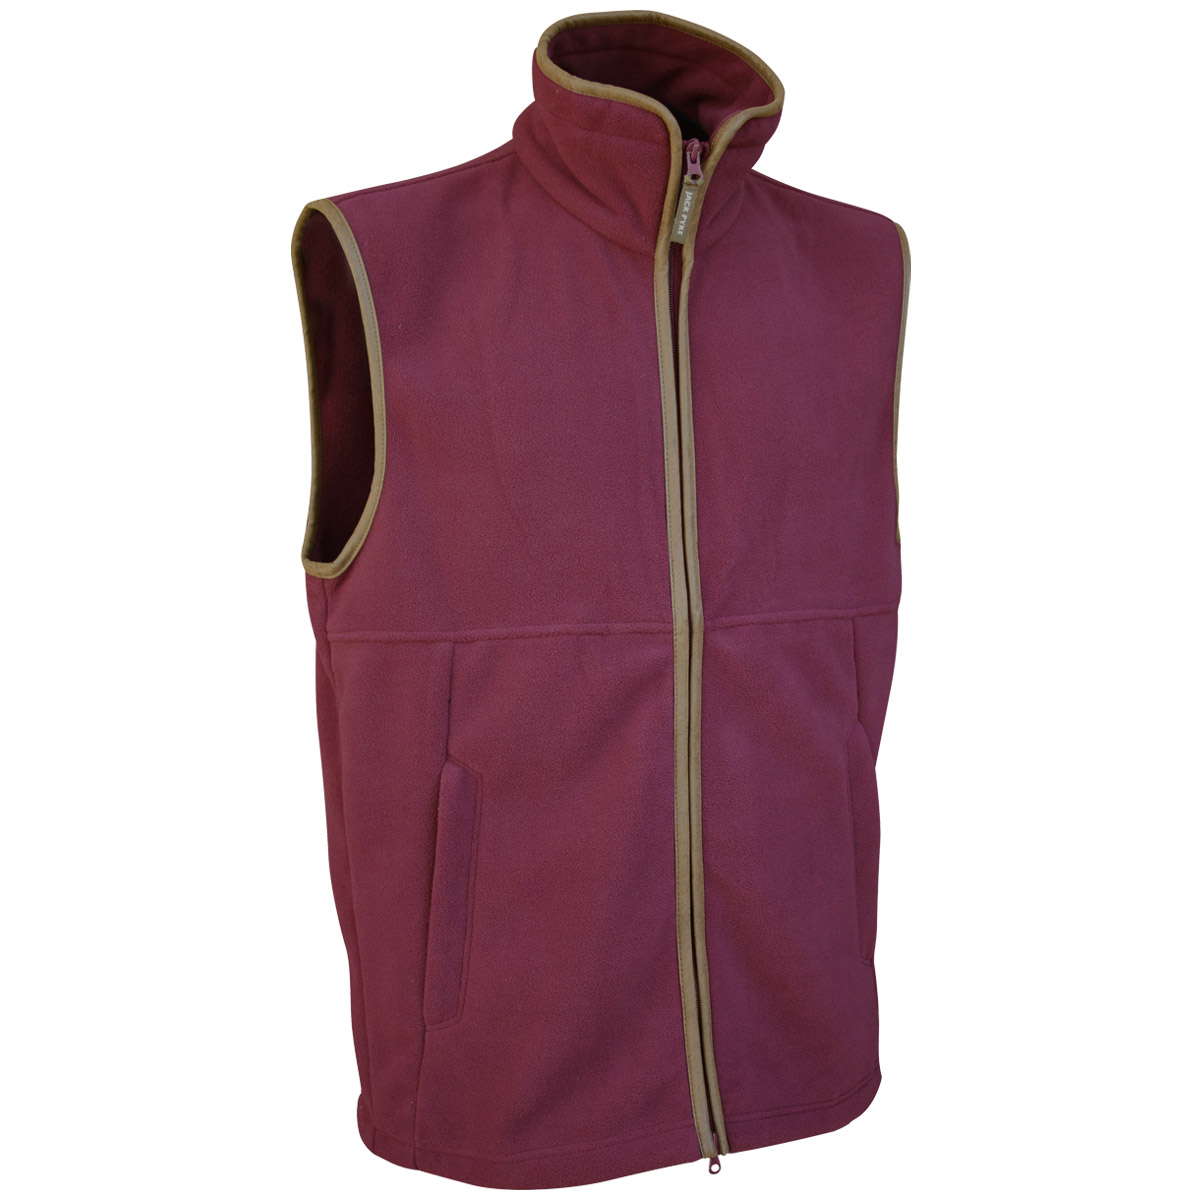 Jack Pyke Countryman Fleece Gilet Body Warmer Mens Sleeveless ...